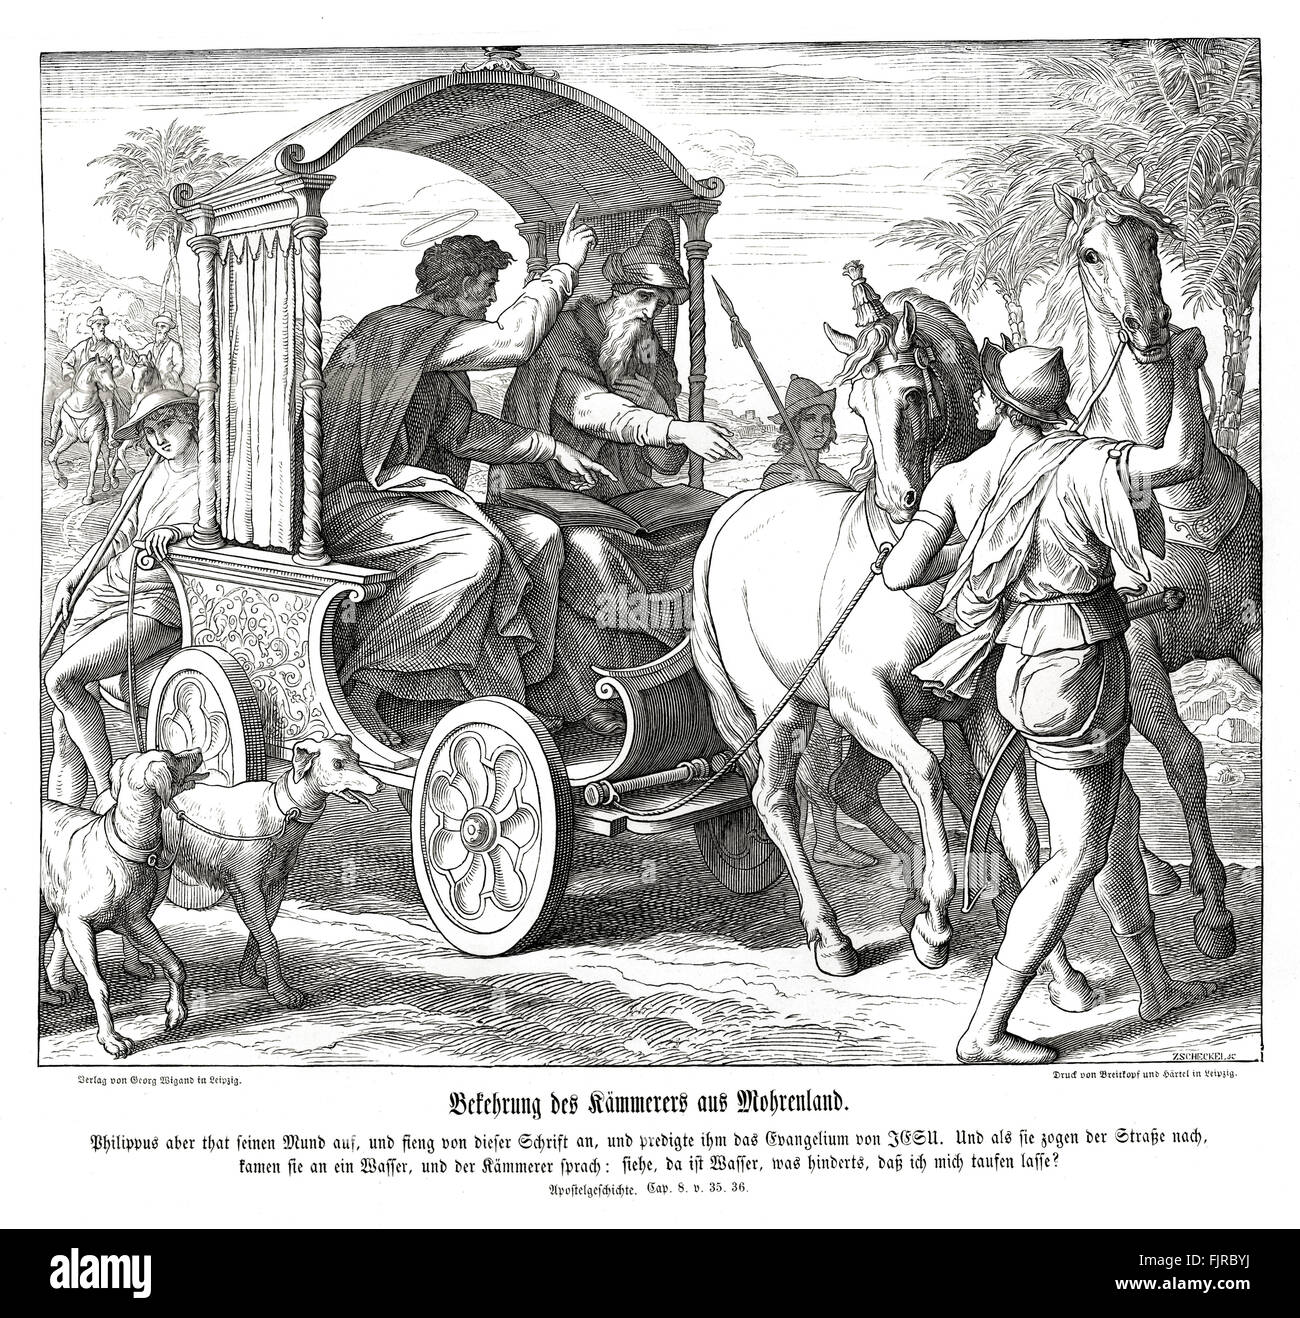 Conversion of the chamberlain from Ethiopia, Acts chapter VIII verses 35 - 36 'And Philip said, If thou believest - Stock Image